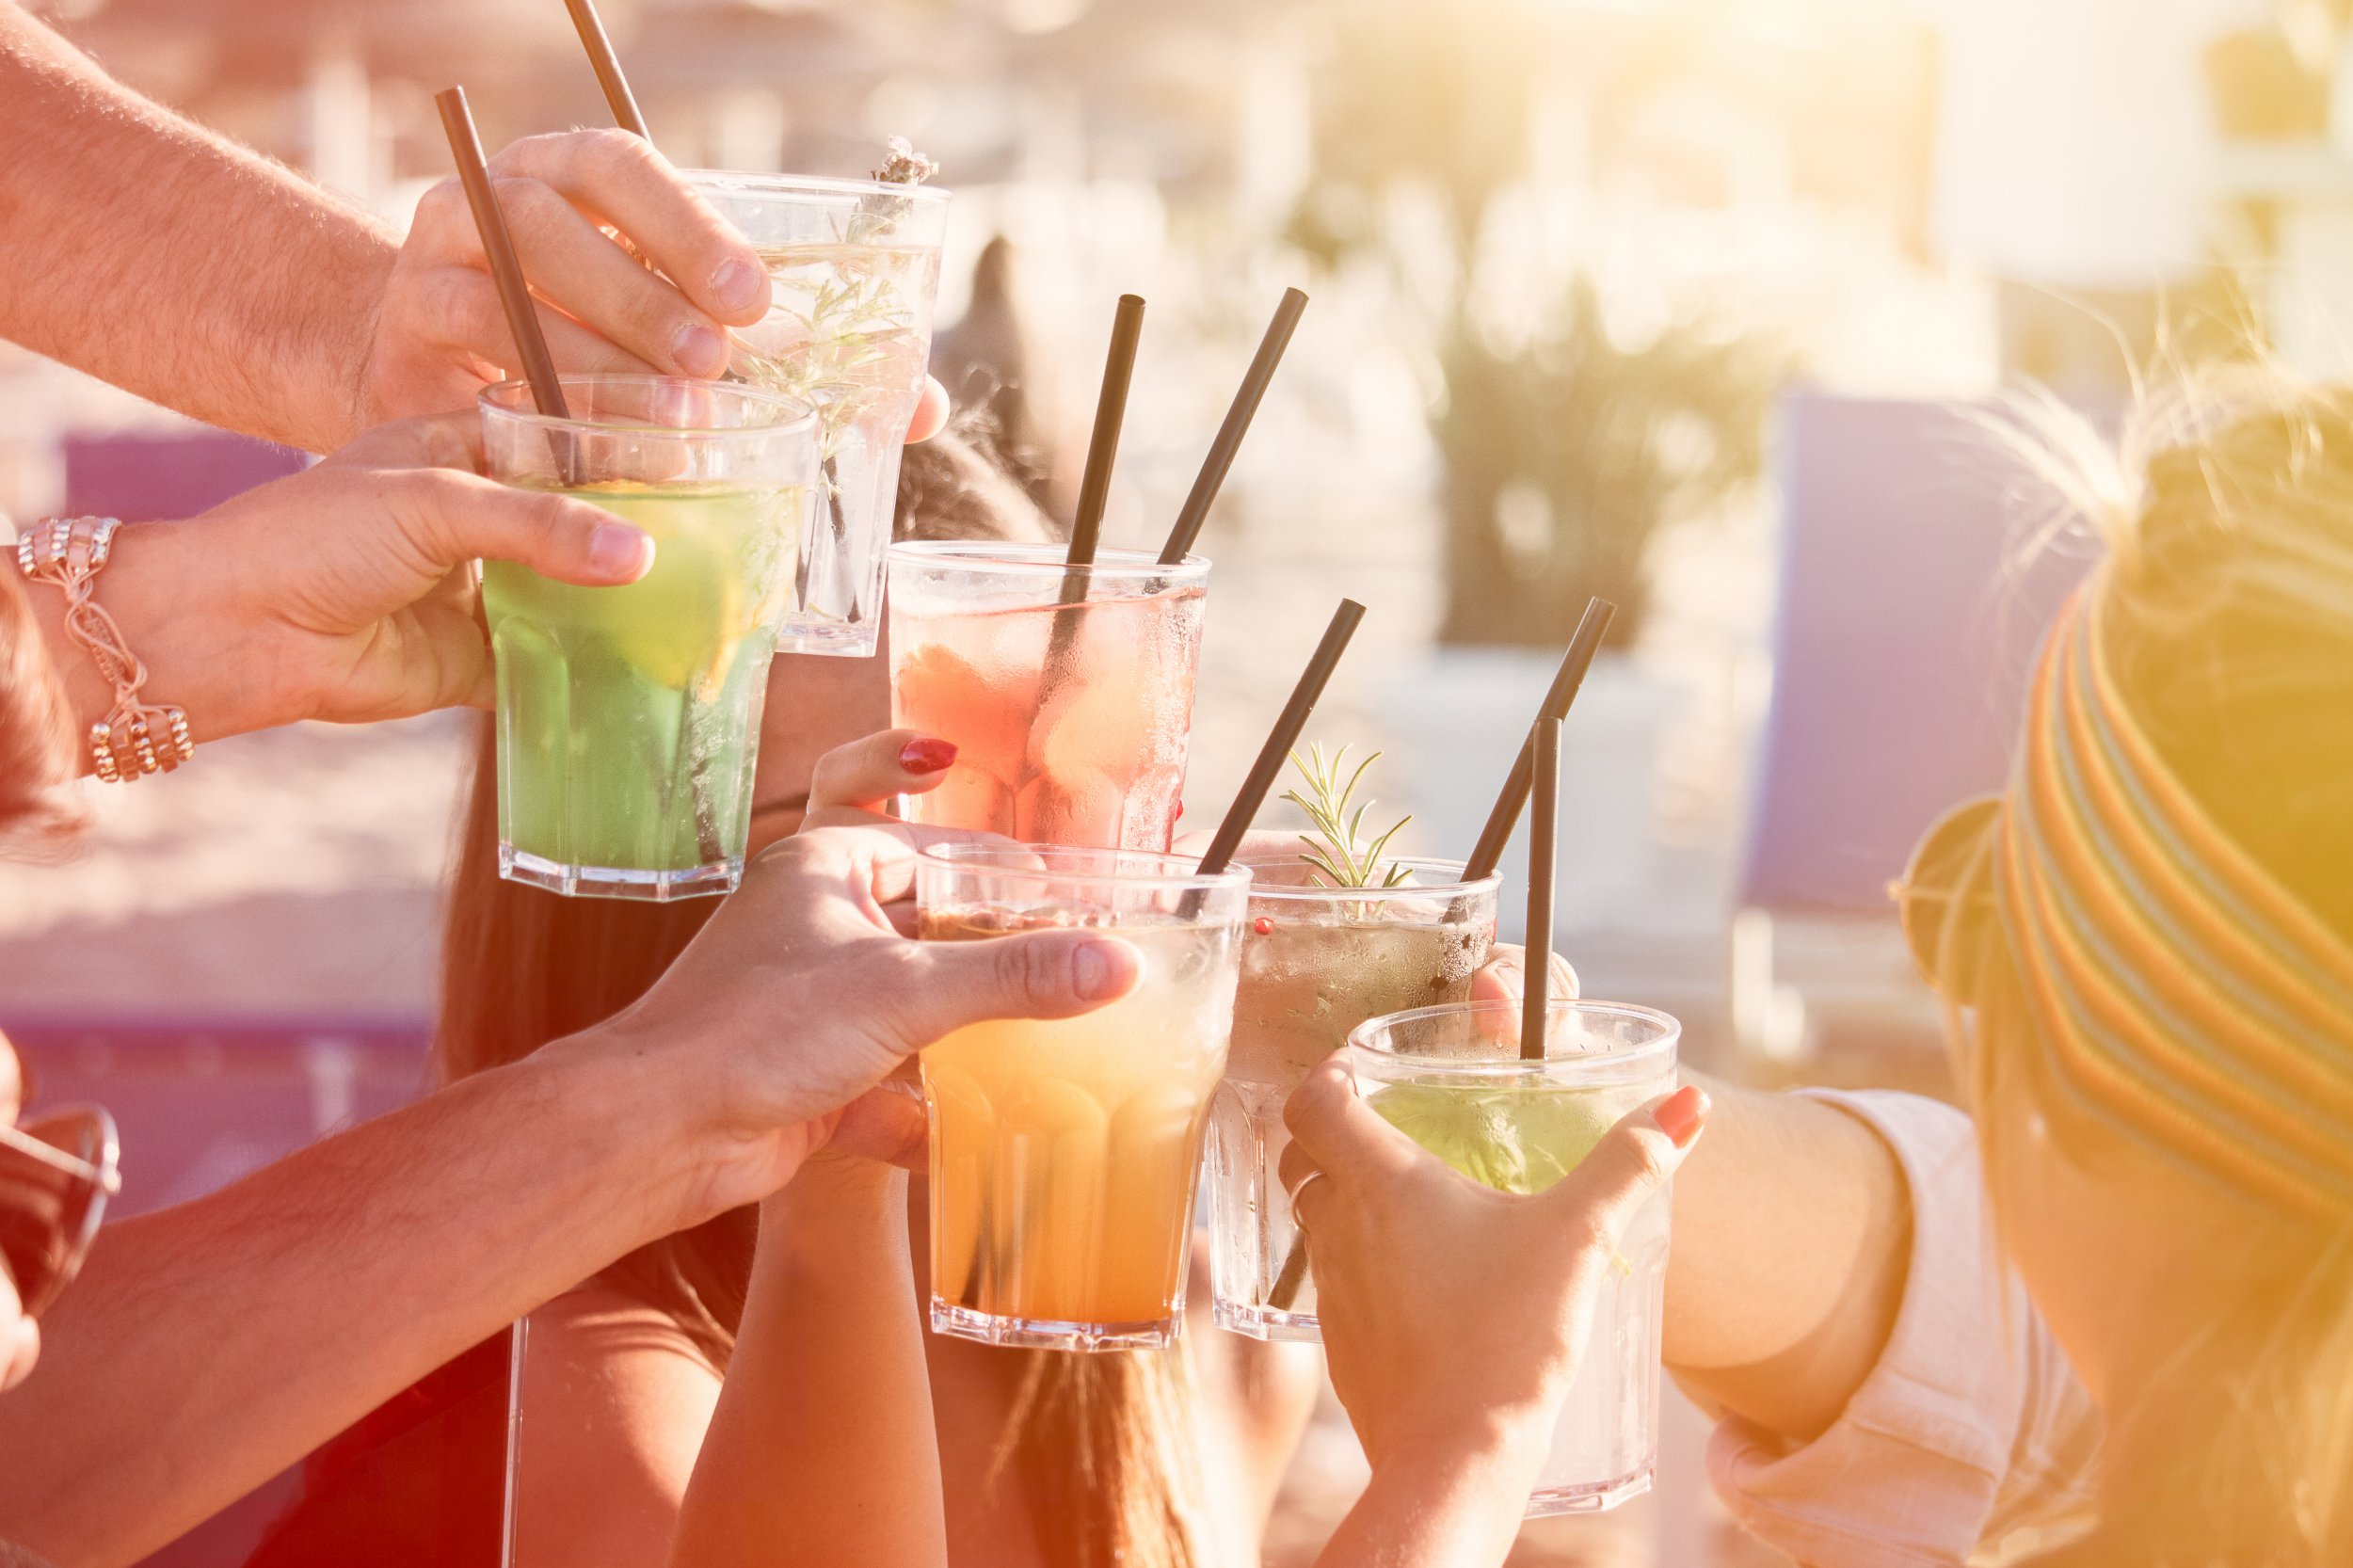 people drinking at party outdoor. group of friends cocktails in hand toasting with glasses.close up on hands and drinks; Shutterstock ID 663056257; Purchase Order: -